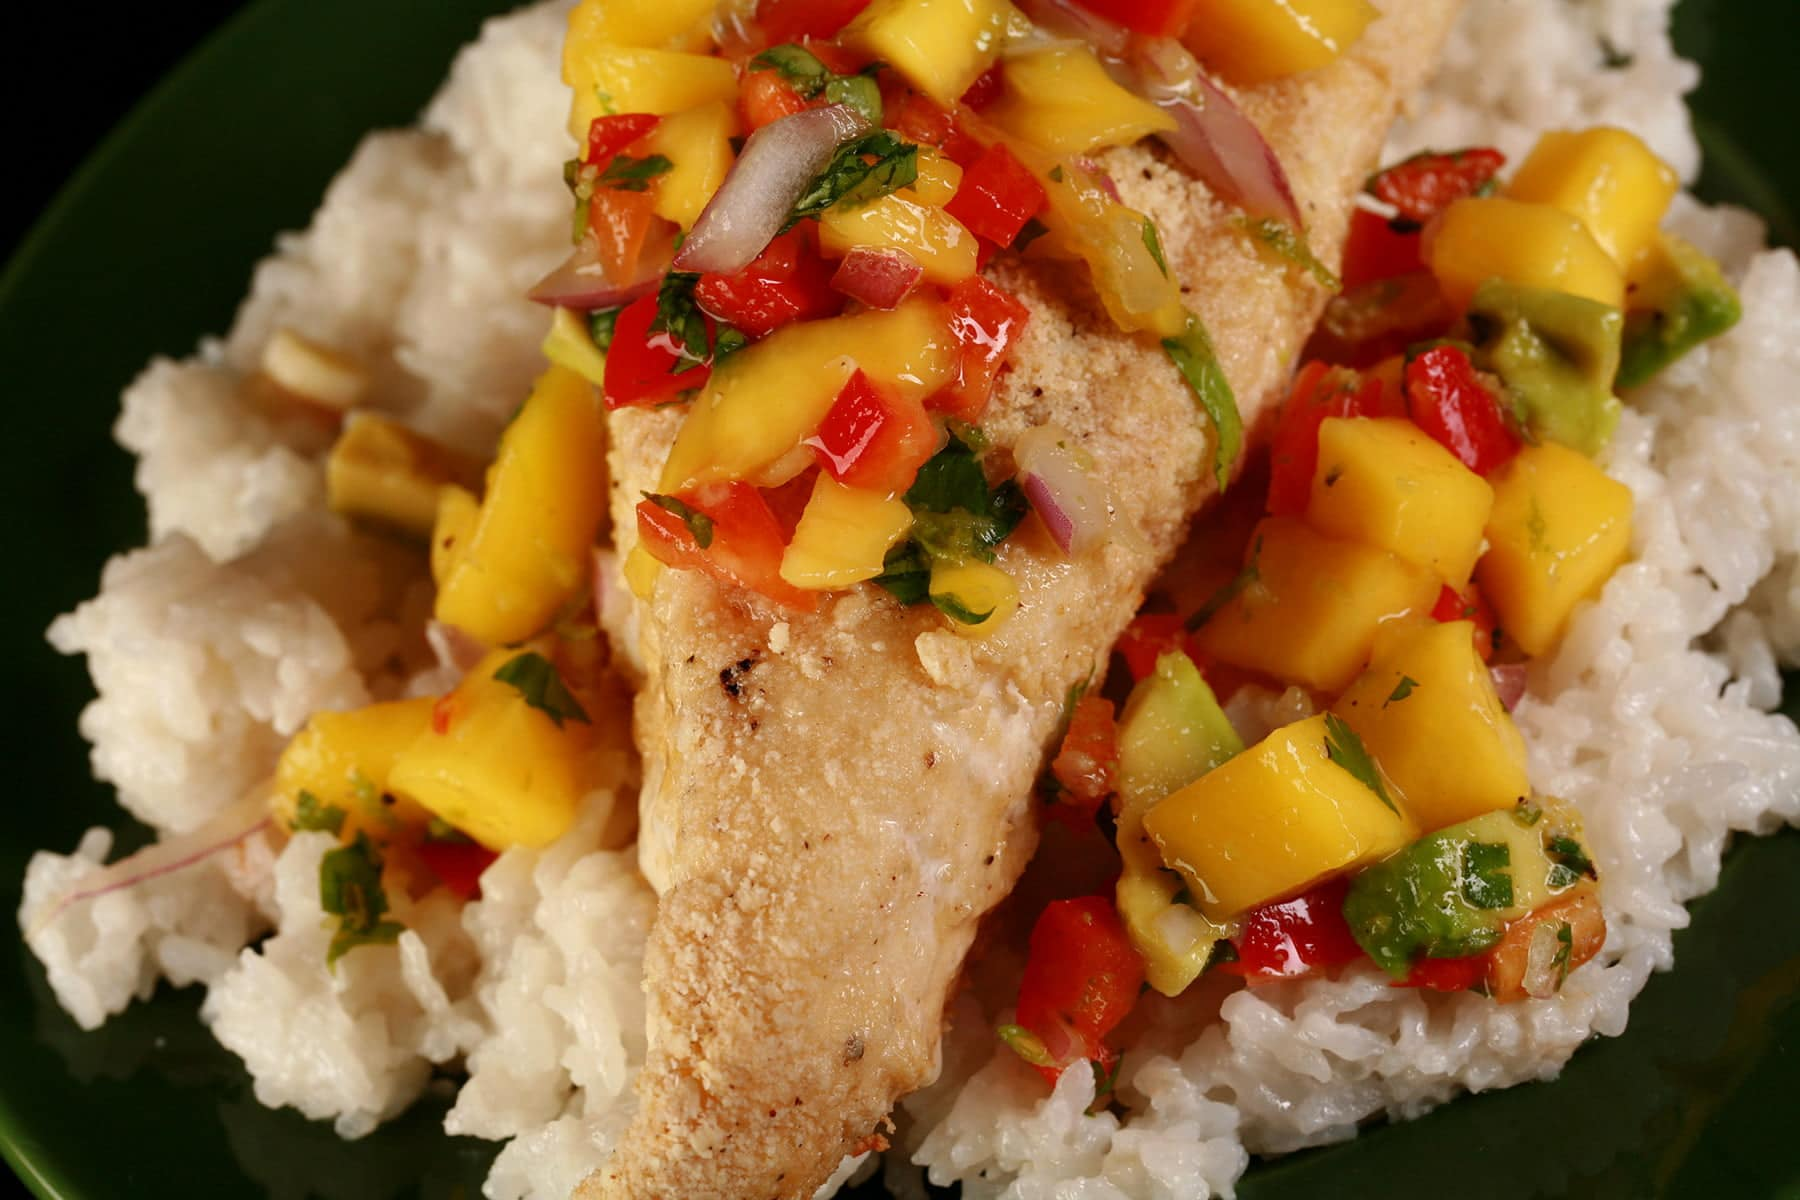 A generous portion of cashew crusted halibut steak is shown on top of a bed of coconut rice. It is topped with brightly coloured mango salsa.